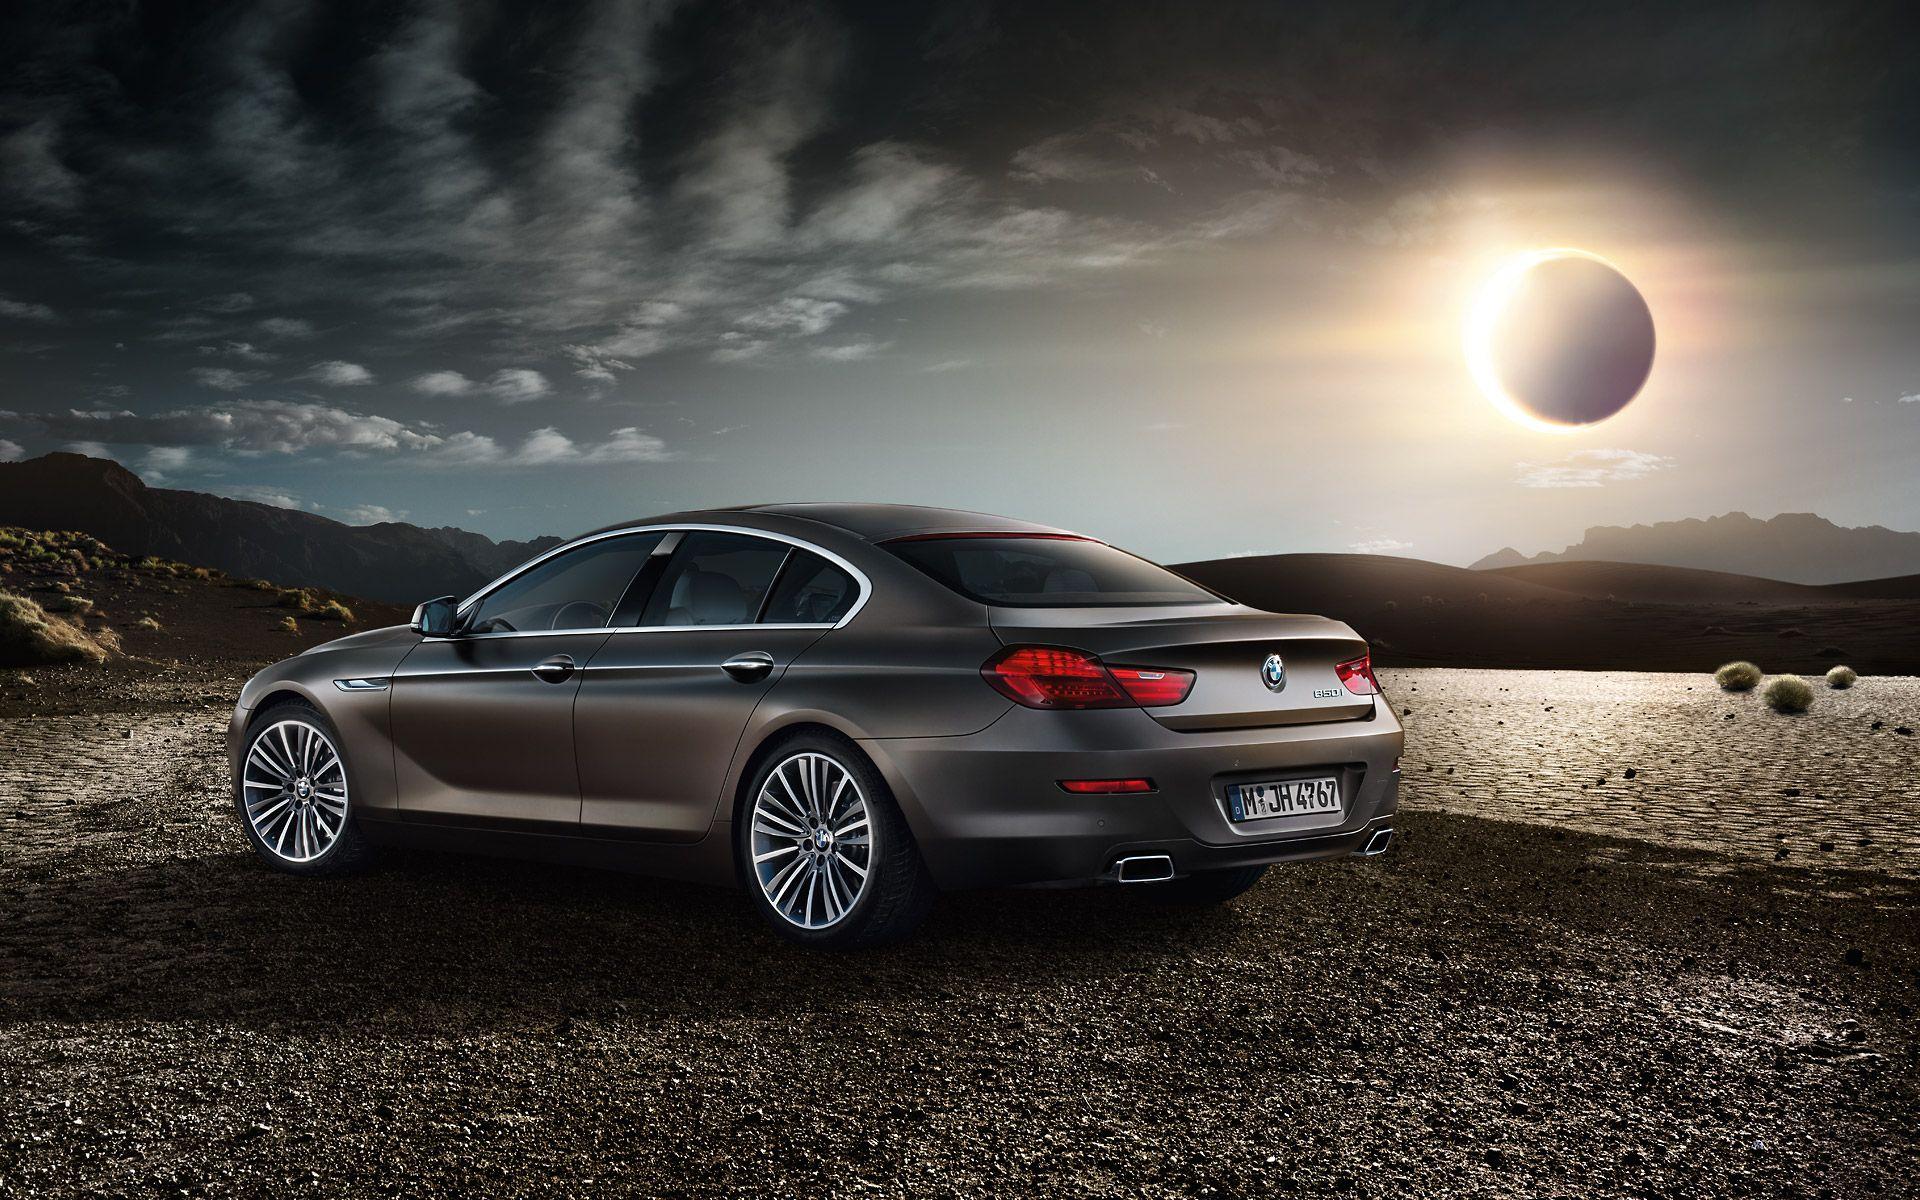 Wallpapers Bmw 6 Series Gran Coupe Bmw 6 Series Bmw 650i